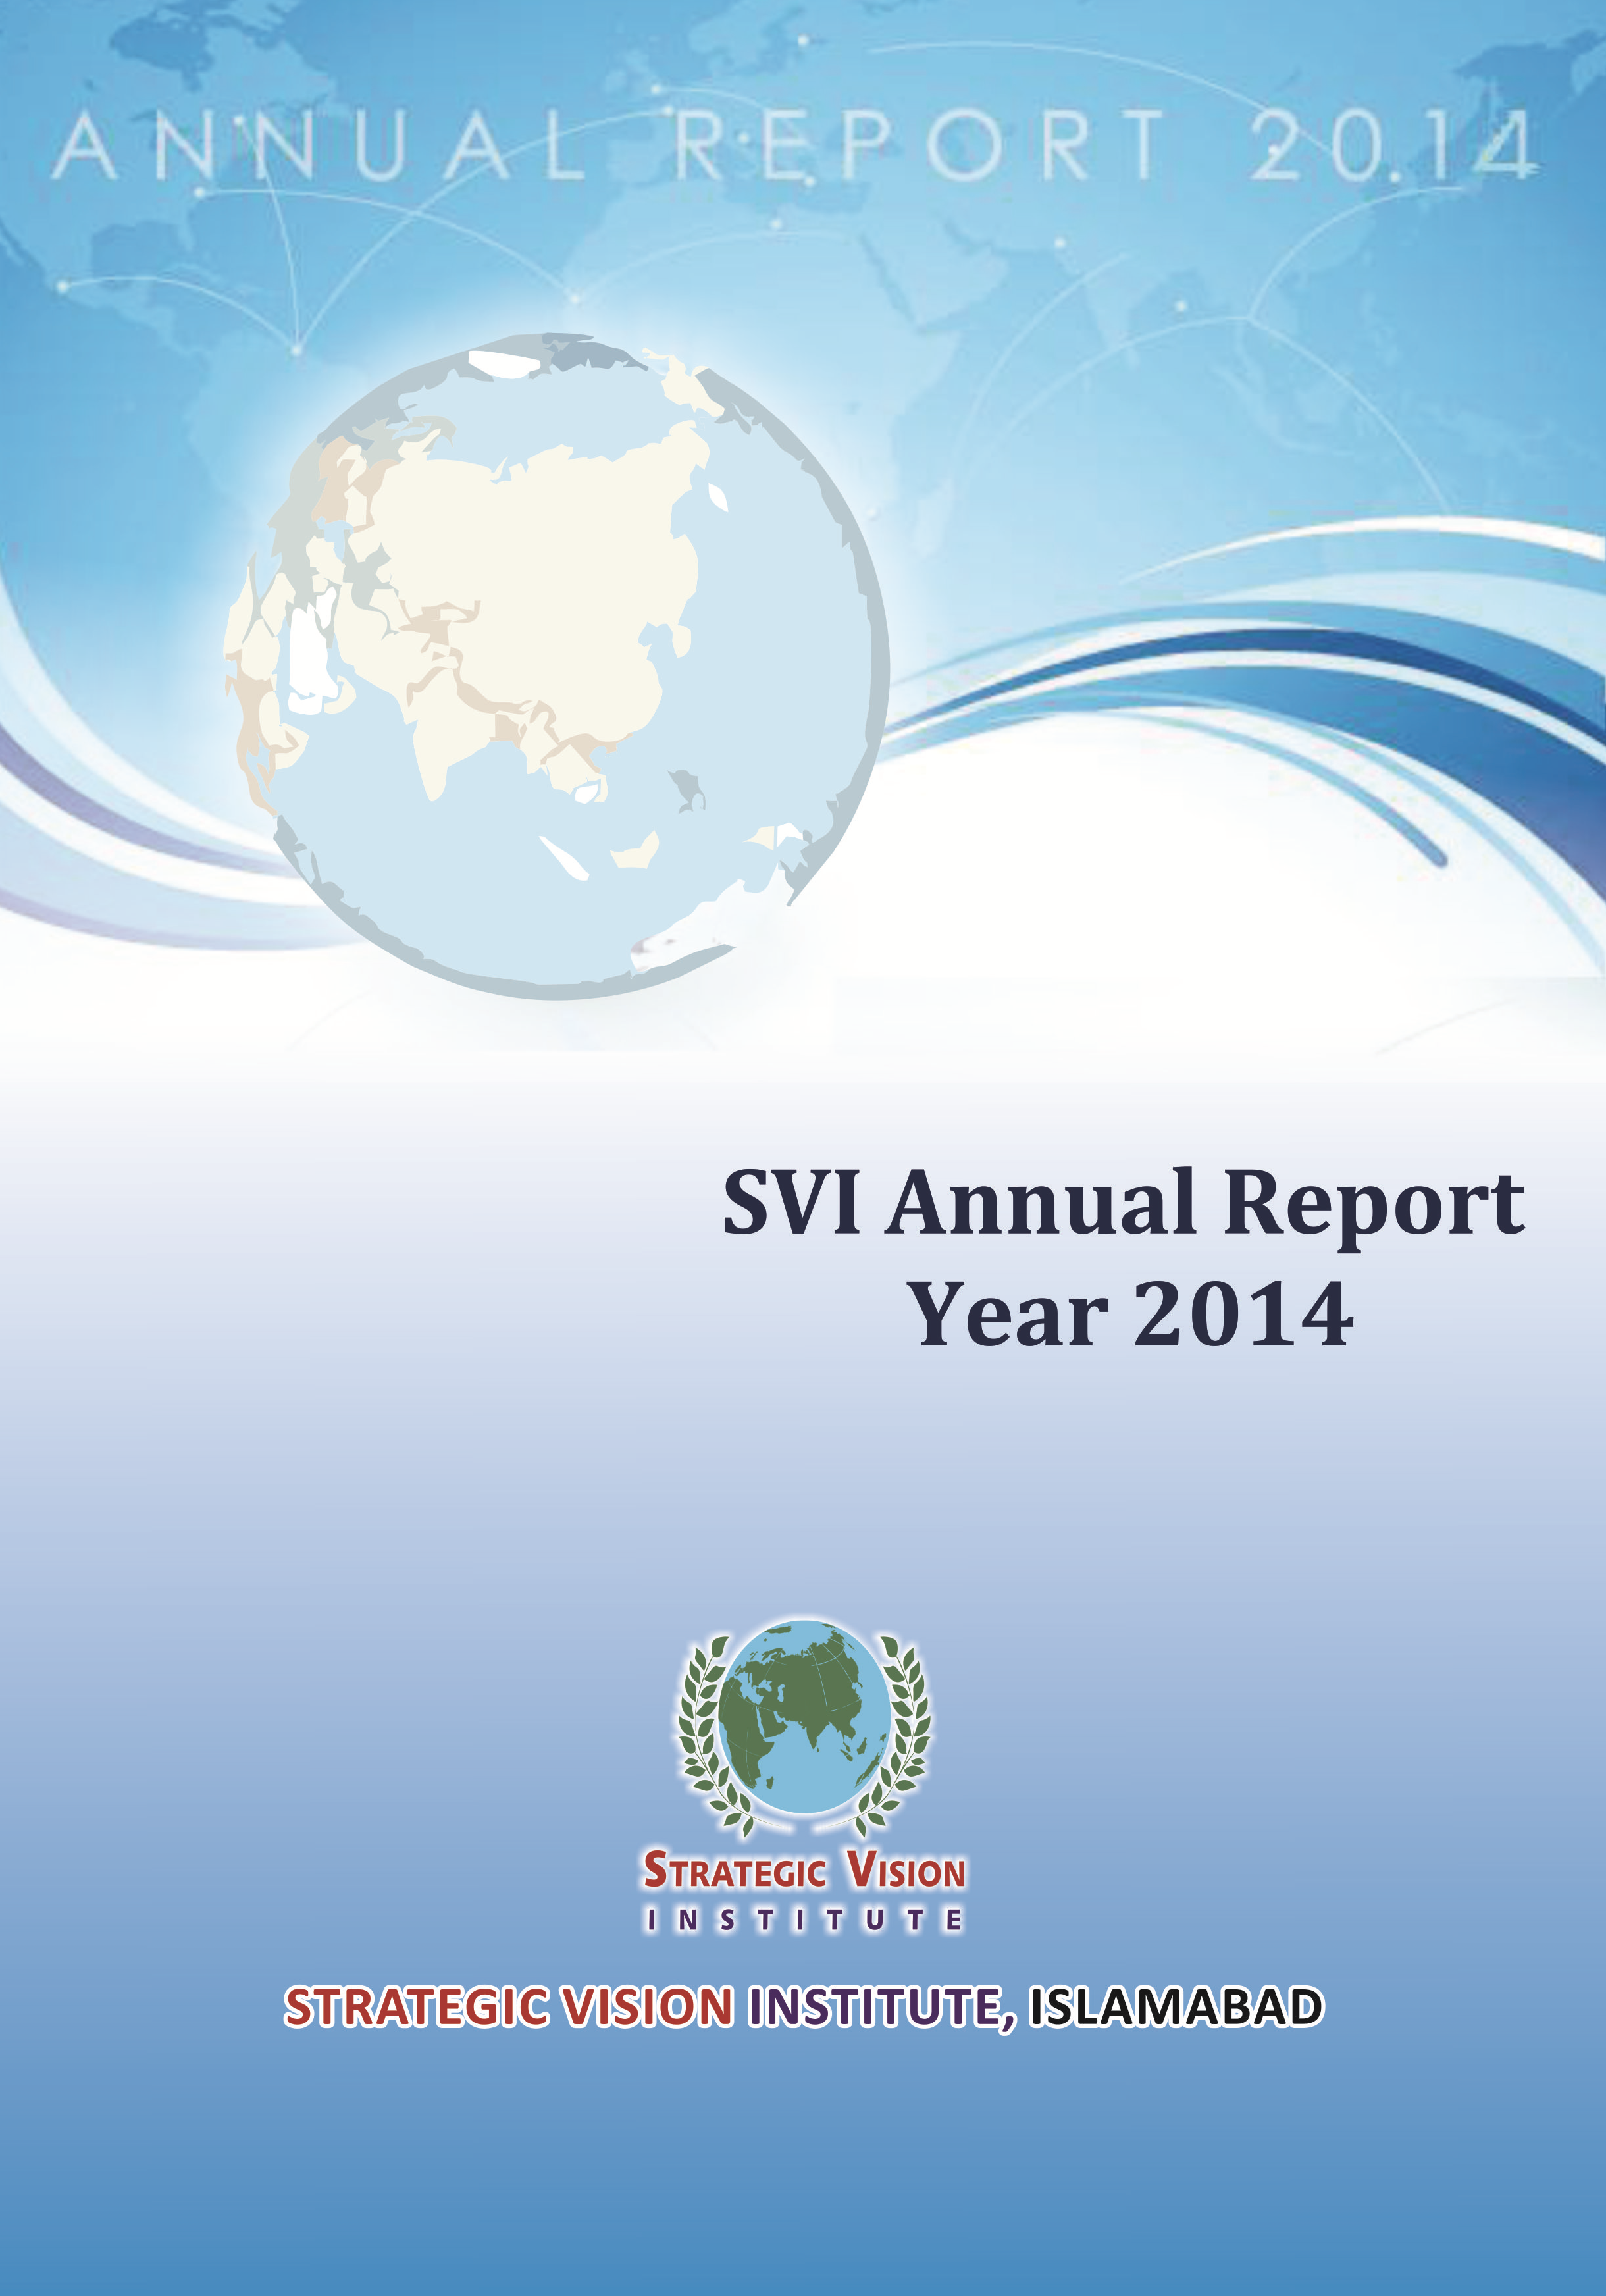 SVI Annual Report 2014